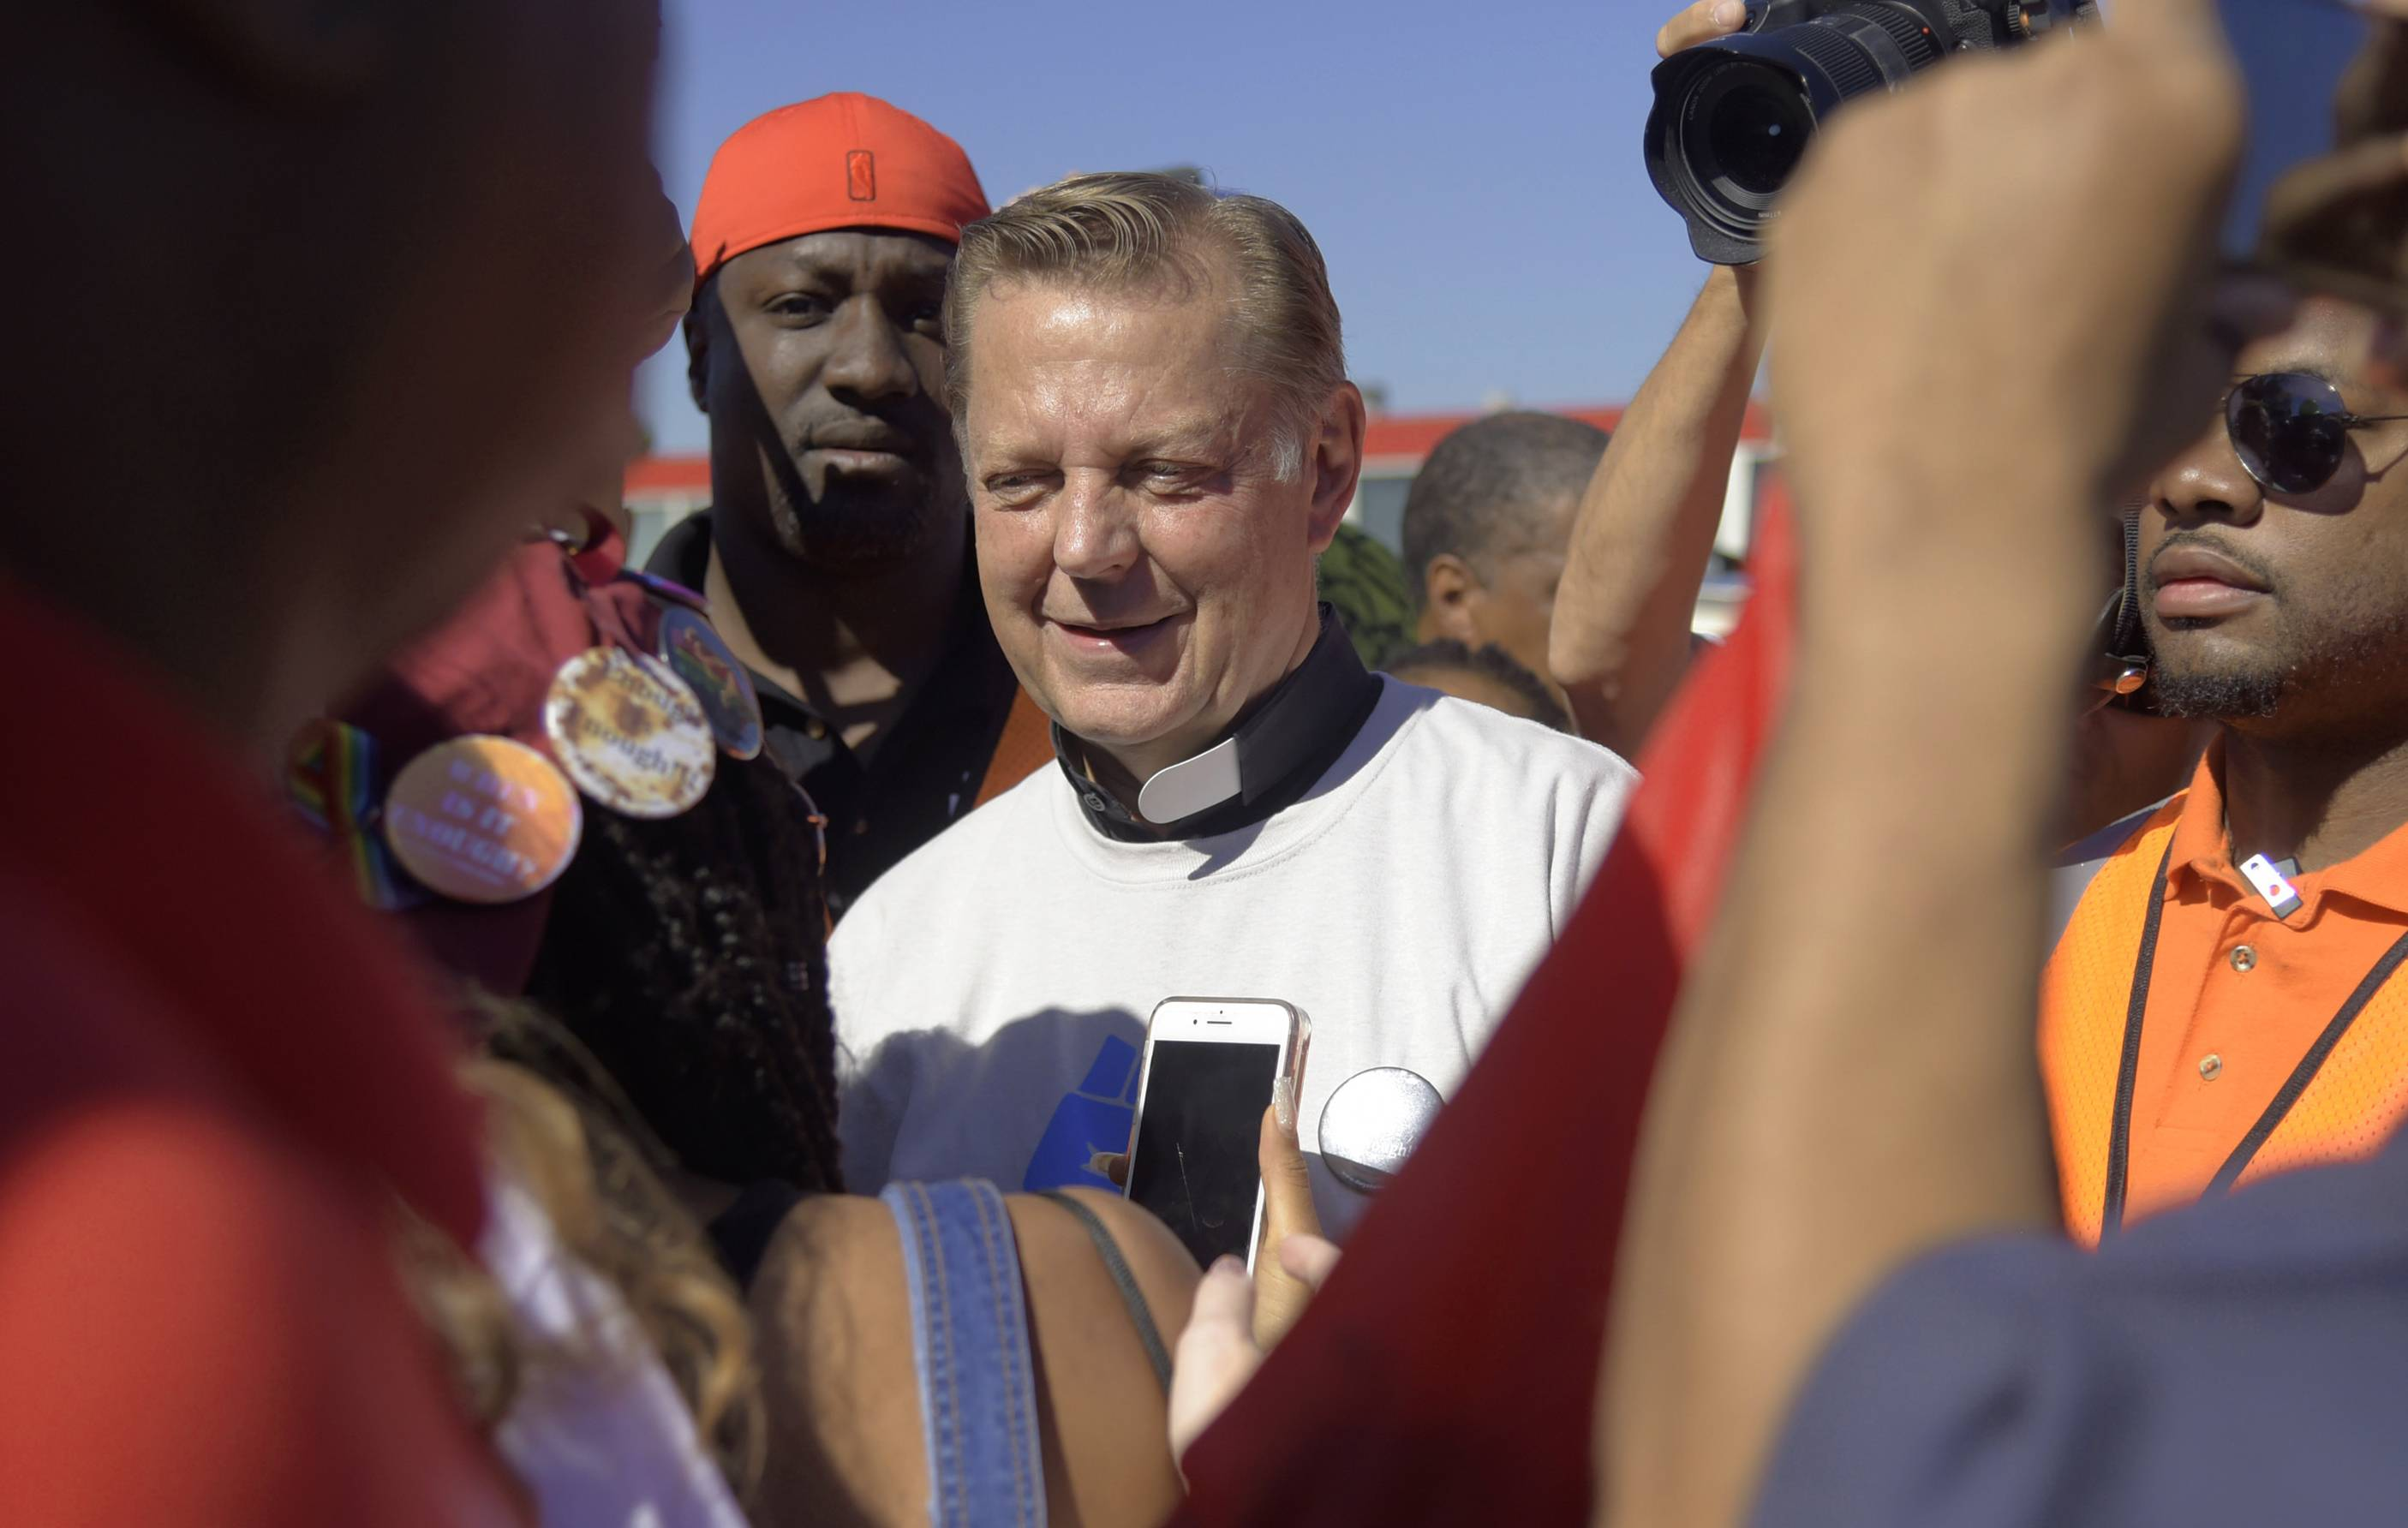 Rev. Michael Pfleger to speak at First UMC in Arlington Heights